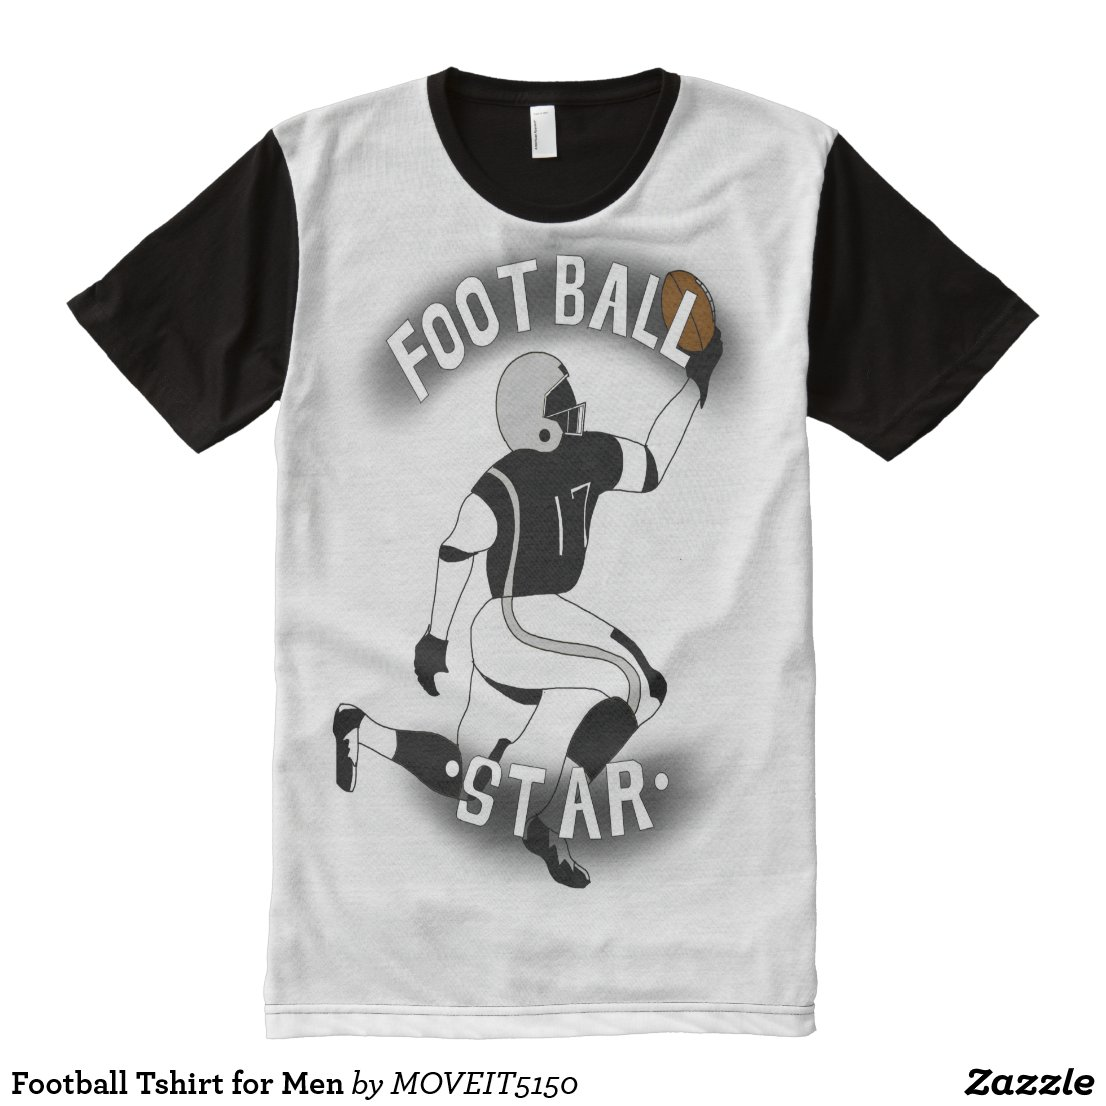 Football Tshirt for Men